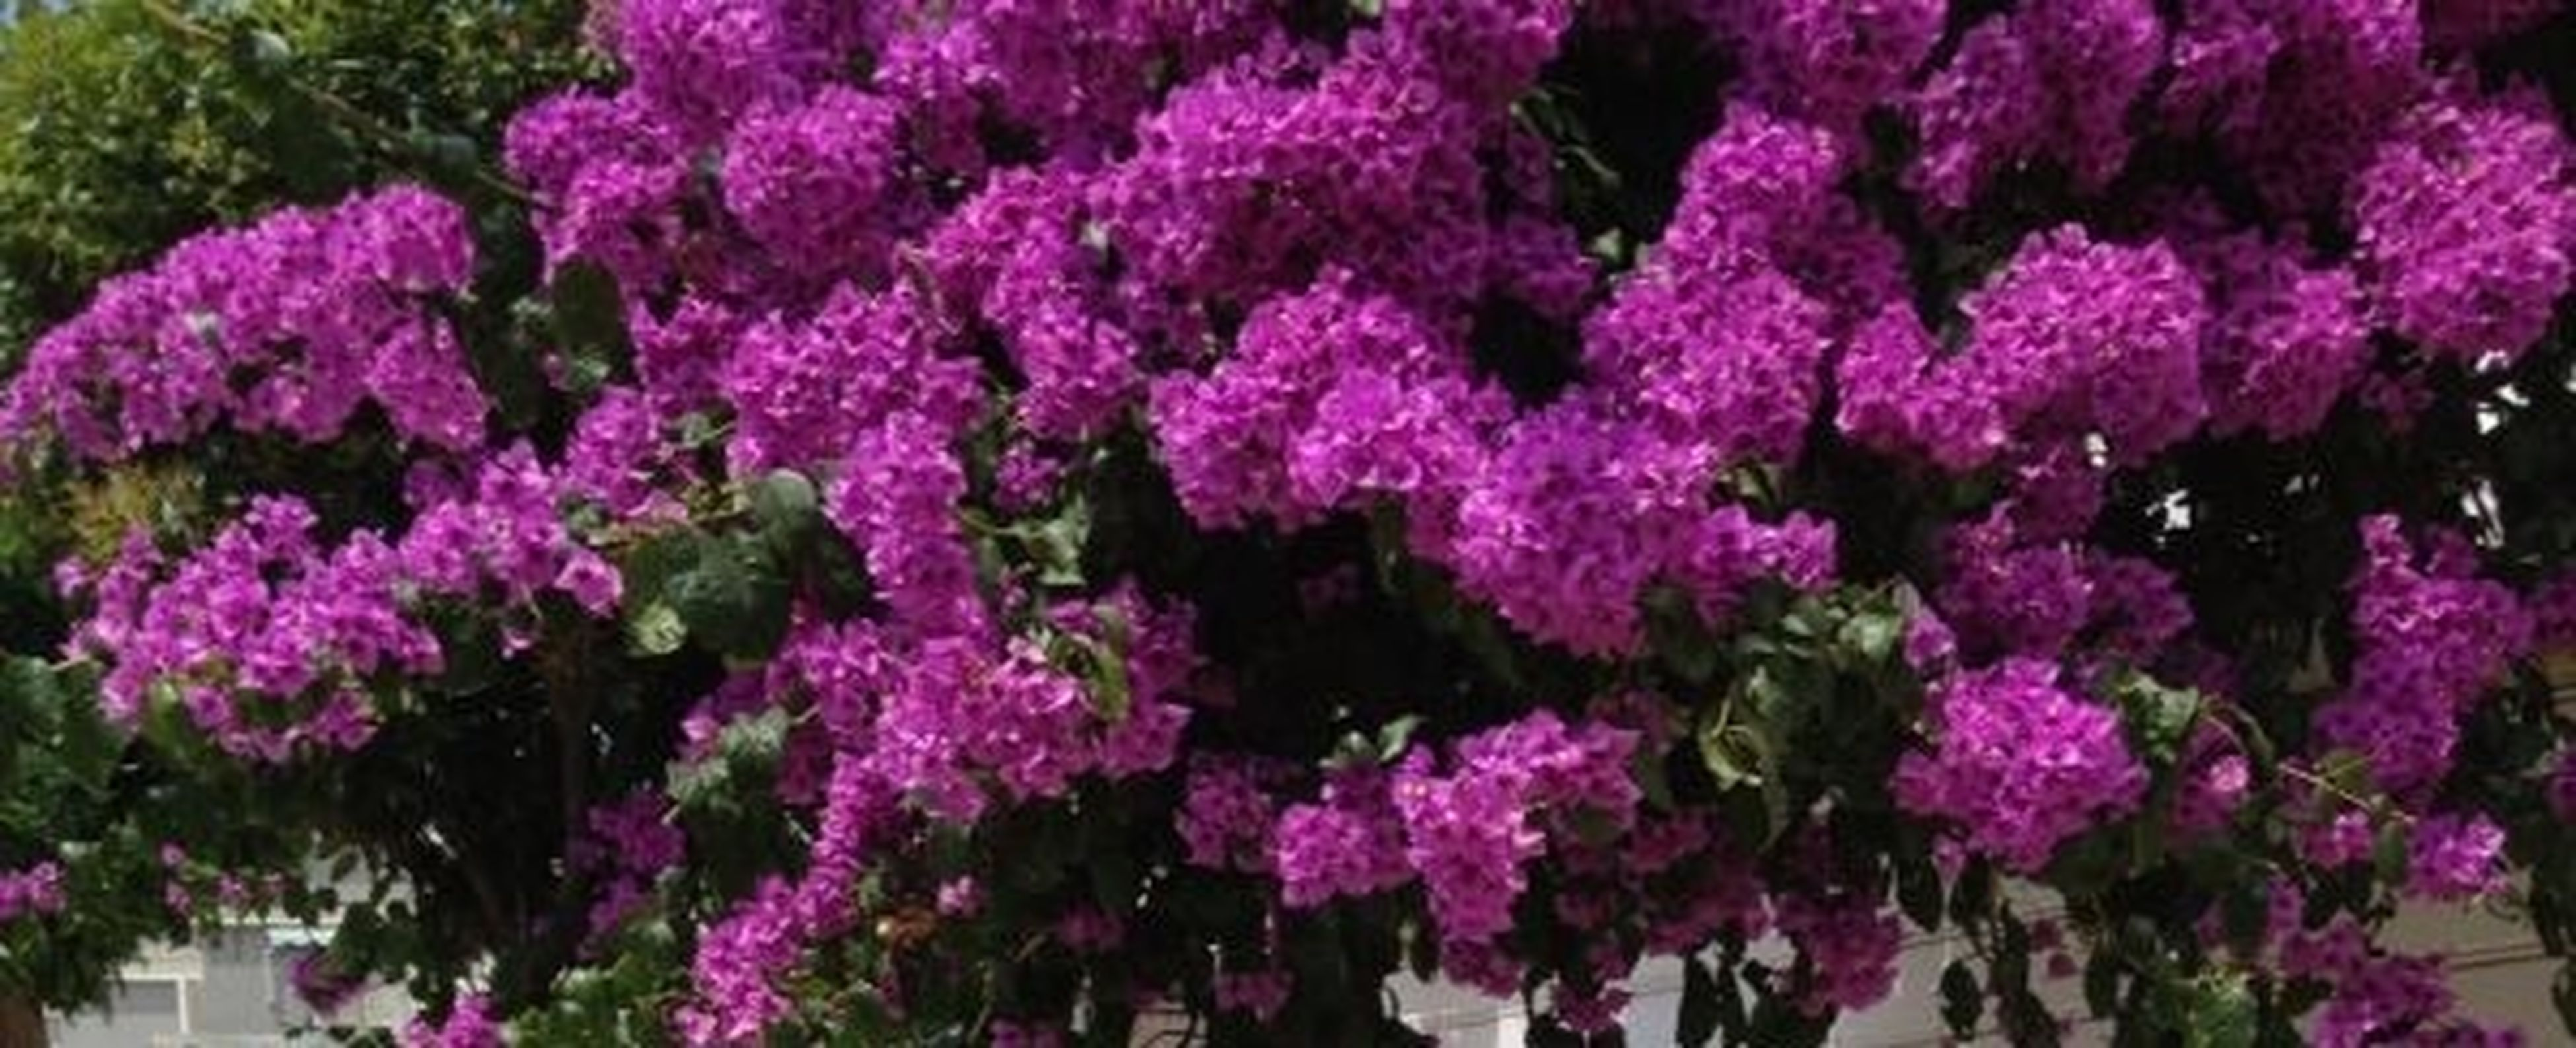 flower, freshness, growth, fragility, beauty in nature, purple, petal, pink color, nature, plant, blooming, full frame, high angle view, abundance, flower head, park - man made space, backgrounds, in bloom, close-up, outdoors